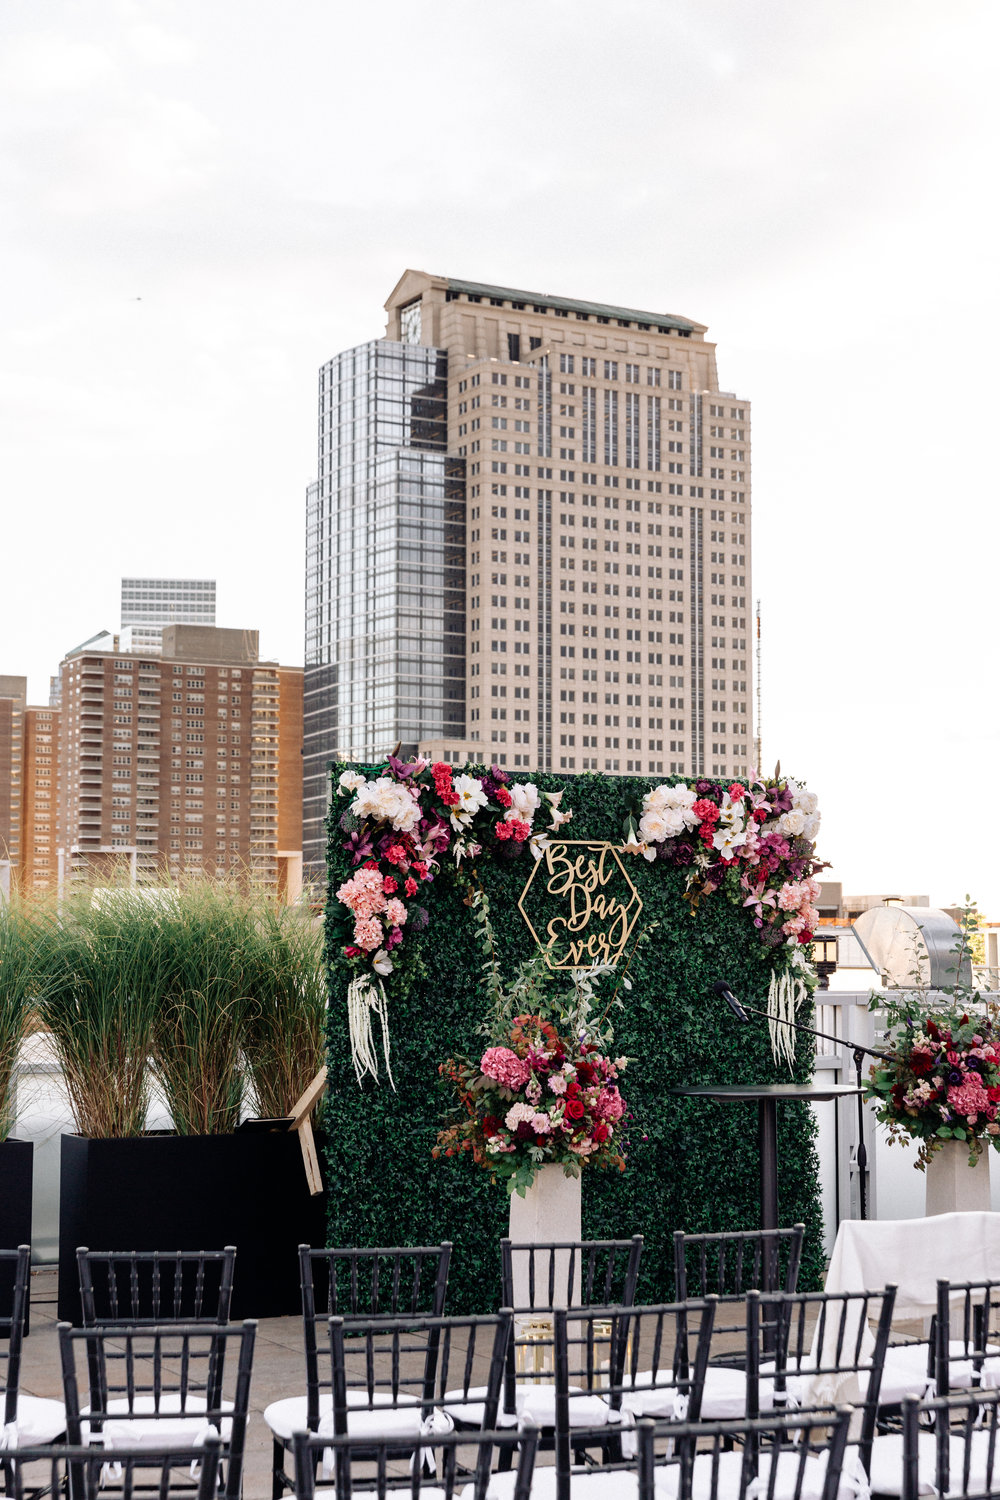 Hailley+Howard_Manhattan+Wedding_The+Tibecca+Rooftop-259.jpg